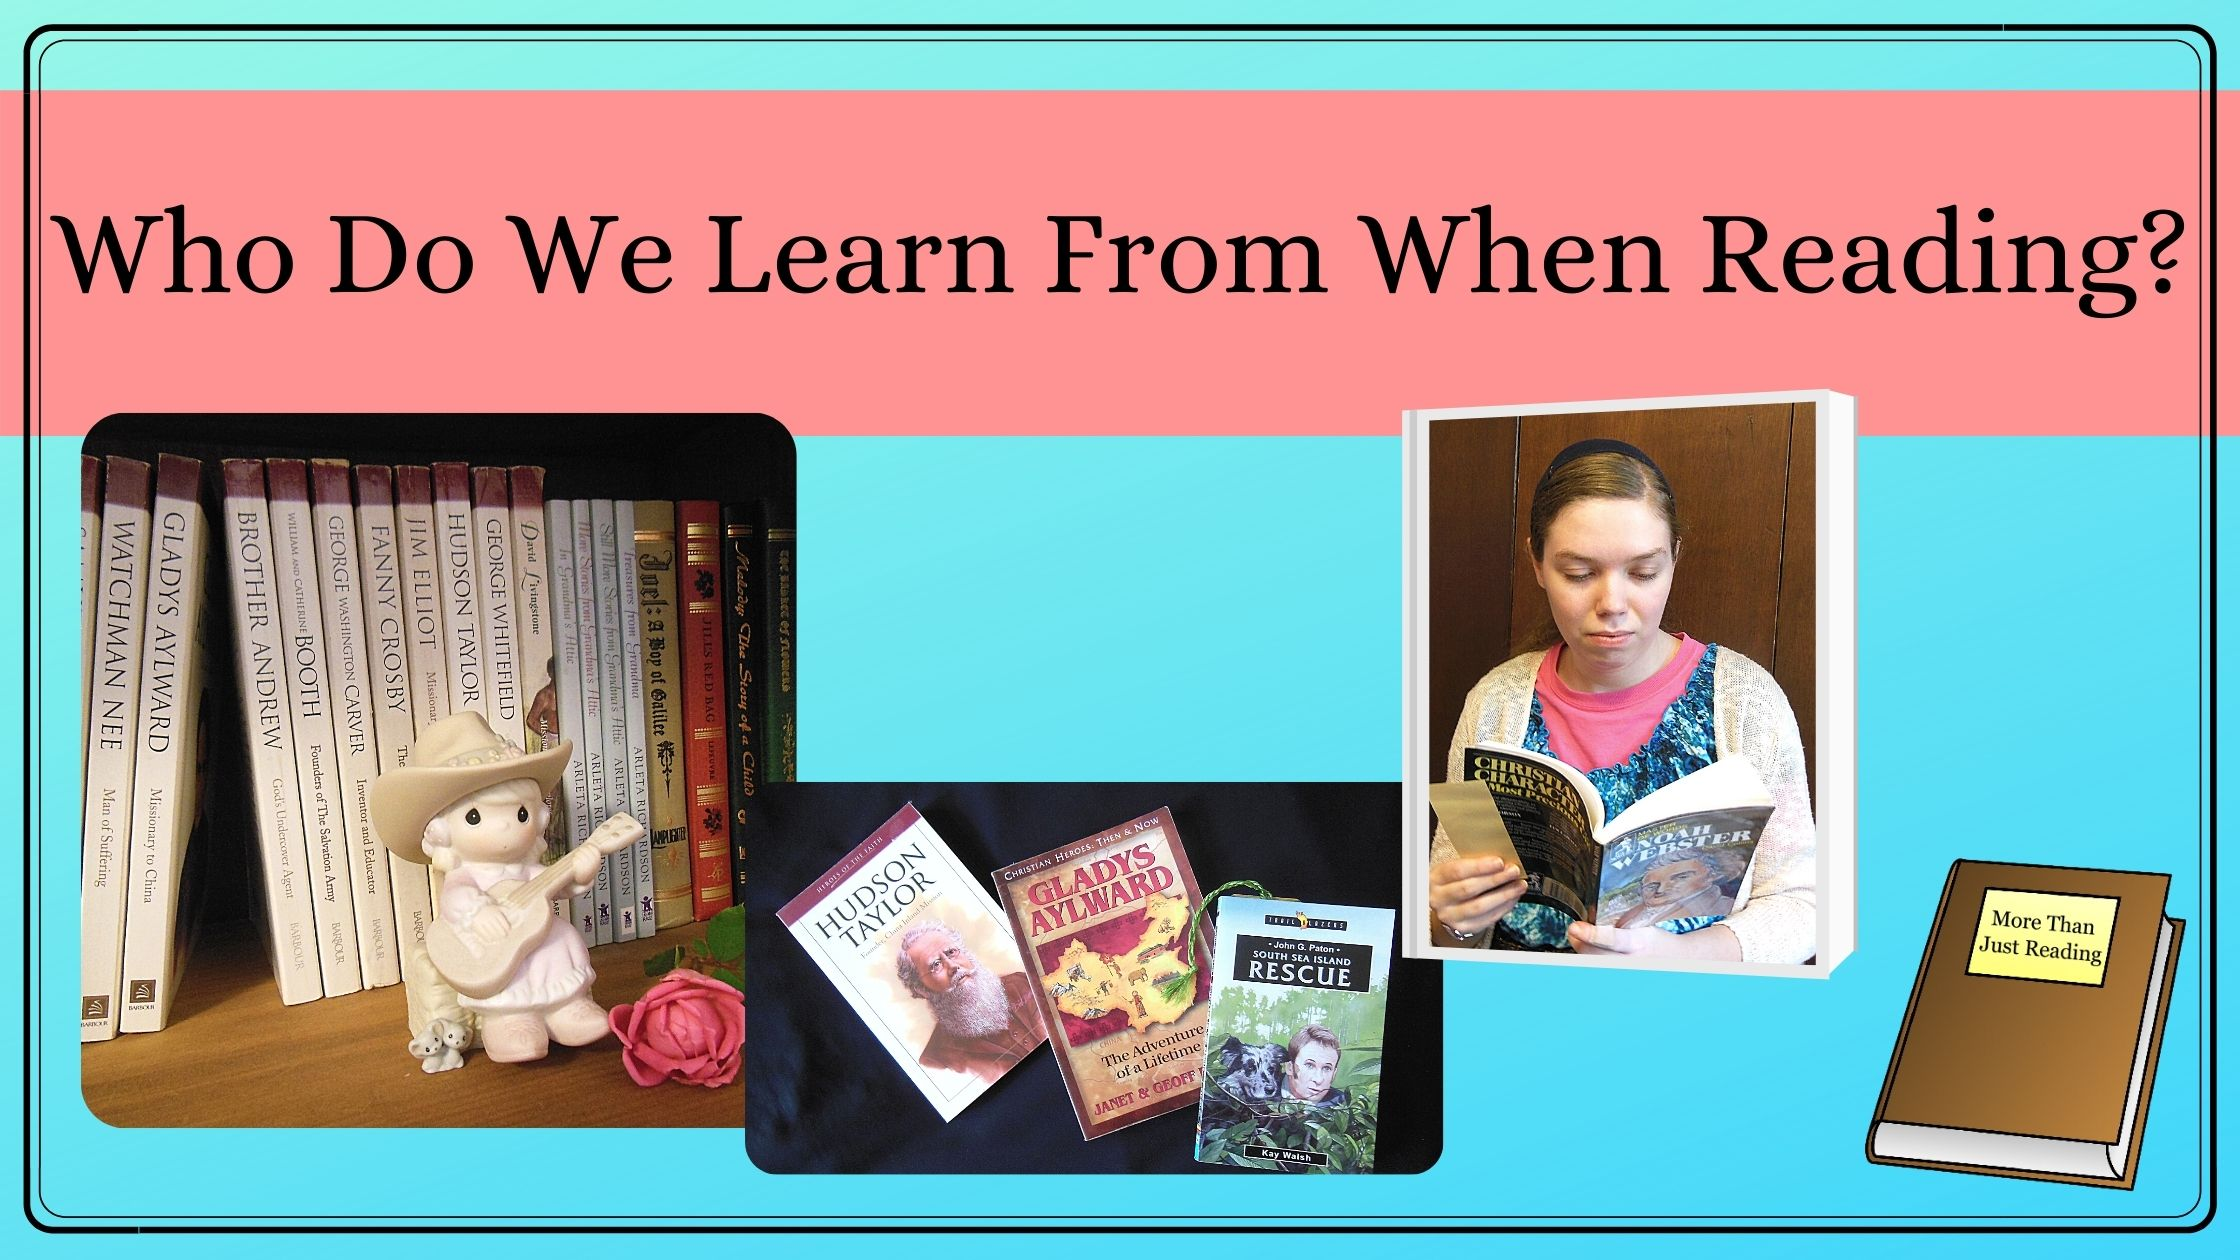 Who do we learn from when reading?